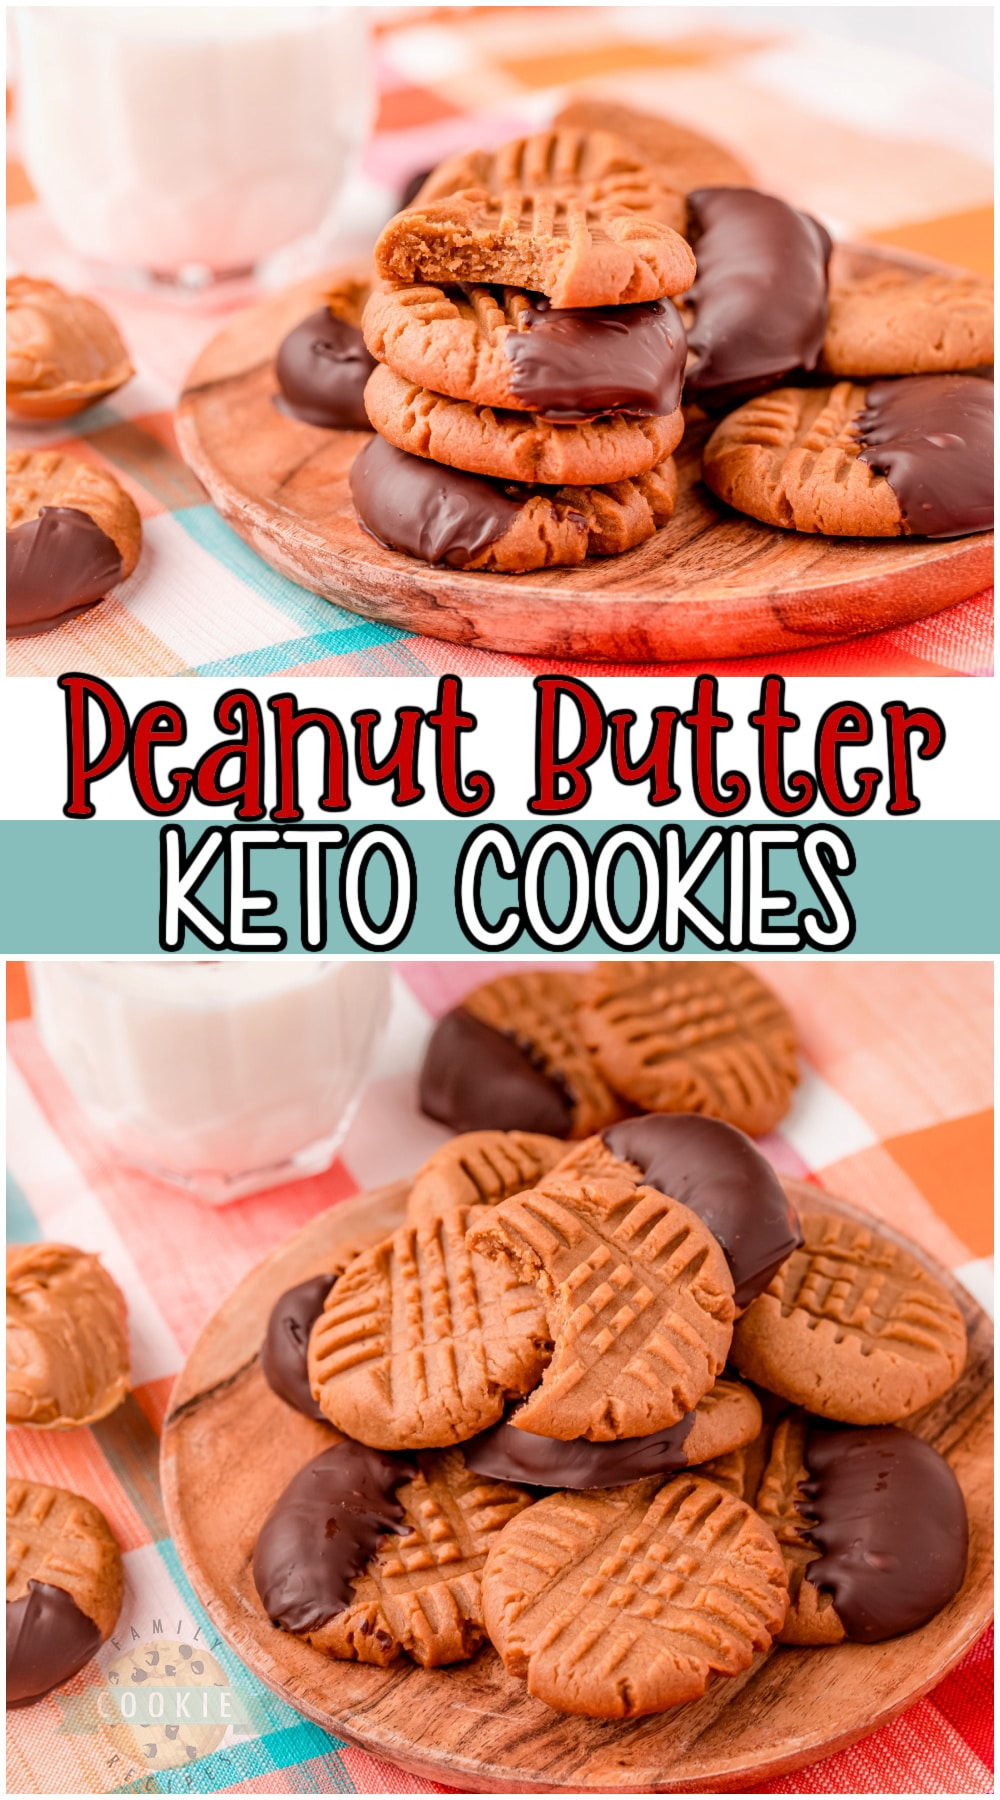 Easy keto peanut butter cookies recipe made with low sugar, creamy peanut butter, and dipped in dark chocolate. Great peanut butter flavor that's satisfying & won't derail your health goals! #keto #cookies #peanutbutter #baking #lowcarb #easyrecipe from FAMiLY COOKIE RECIPES via @buttergirls